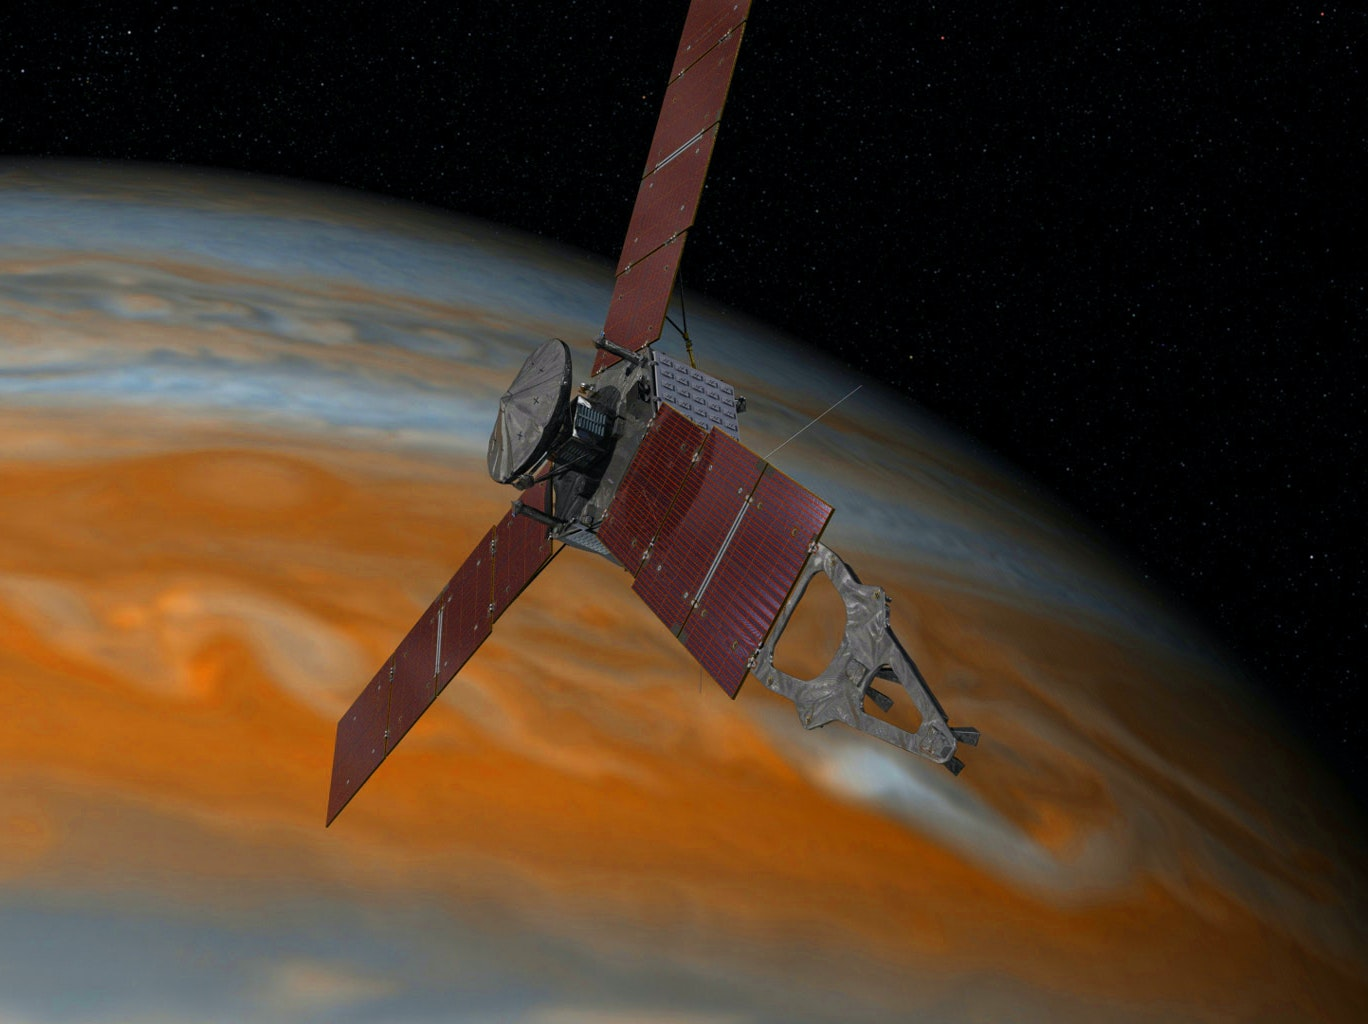 Phew: Juno Seems to Be Doing Fine 594 Million Miles from Home